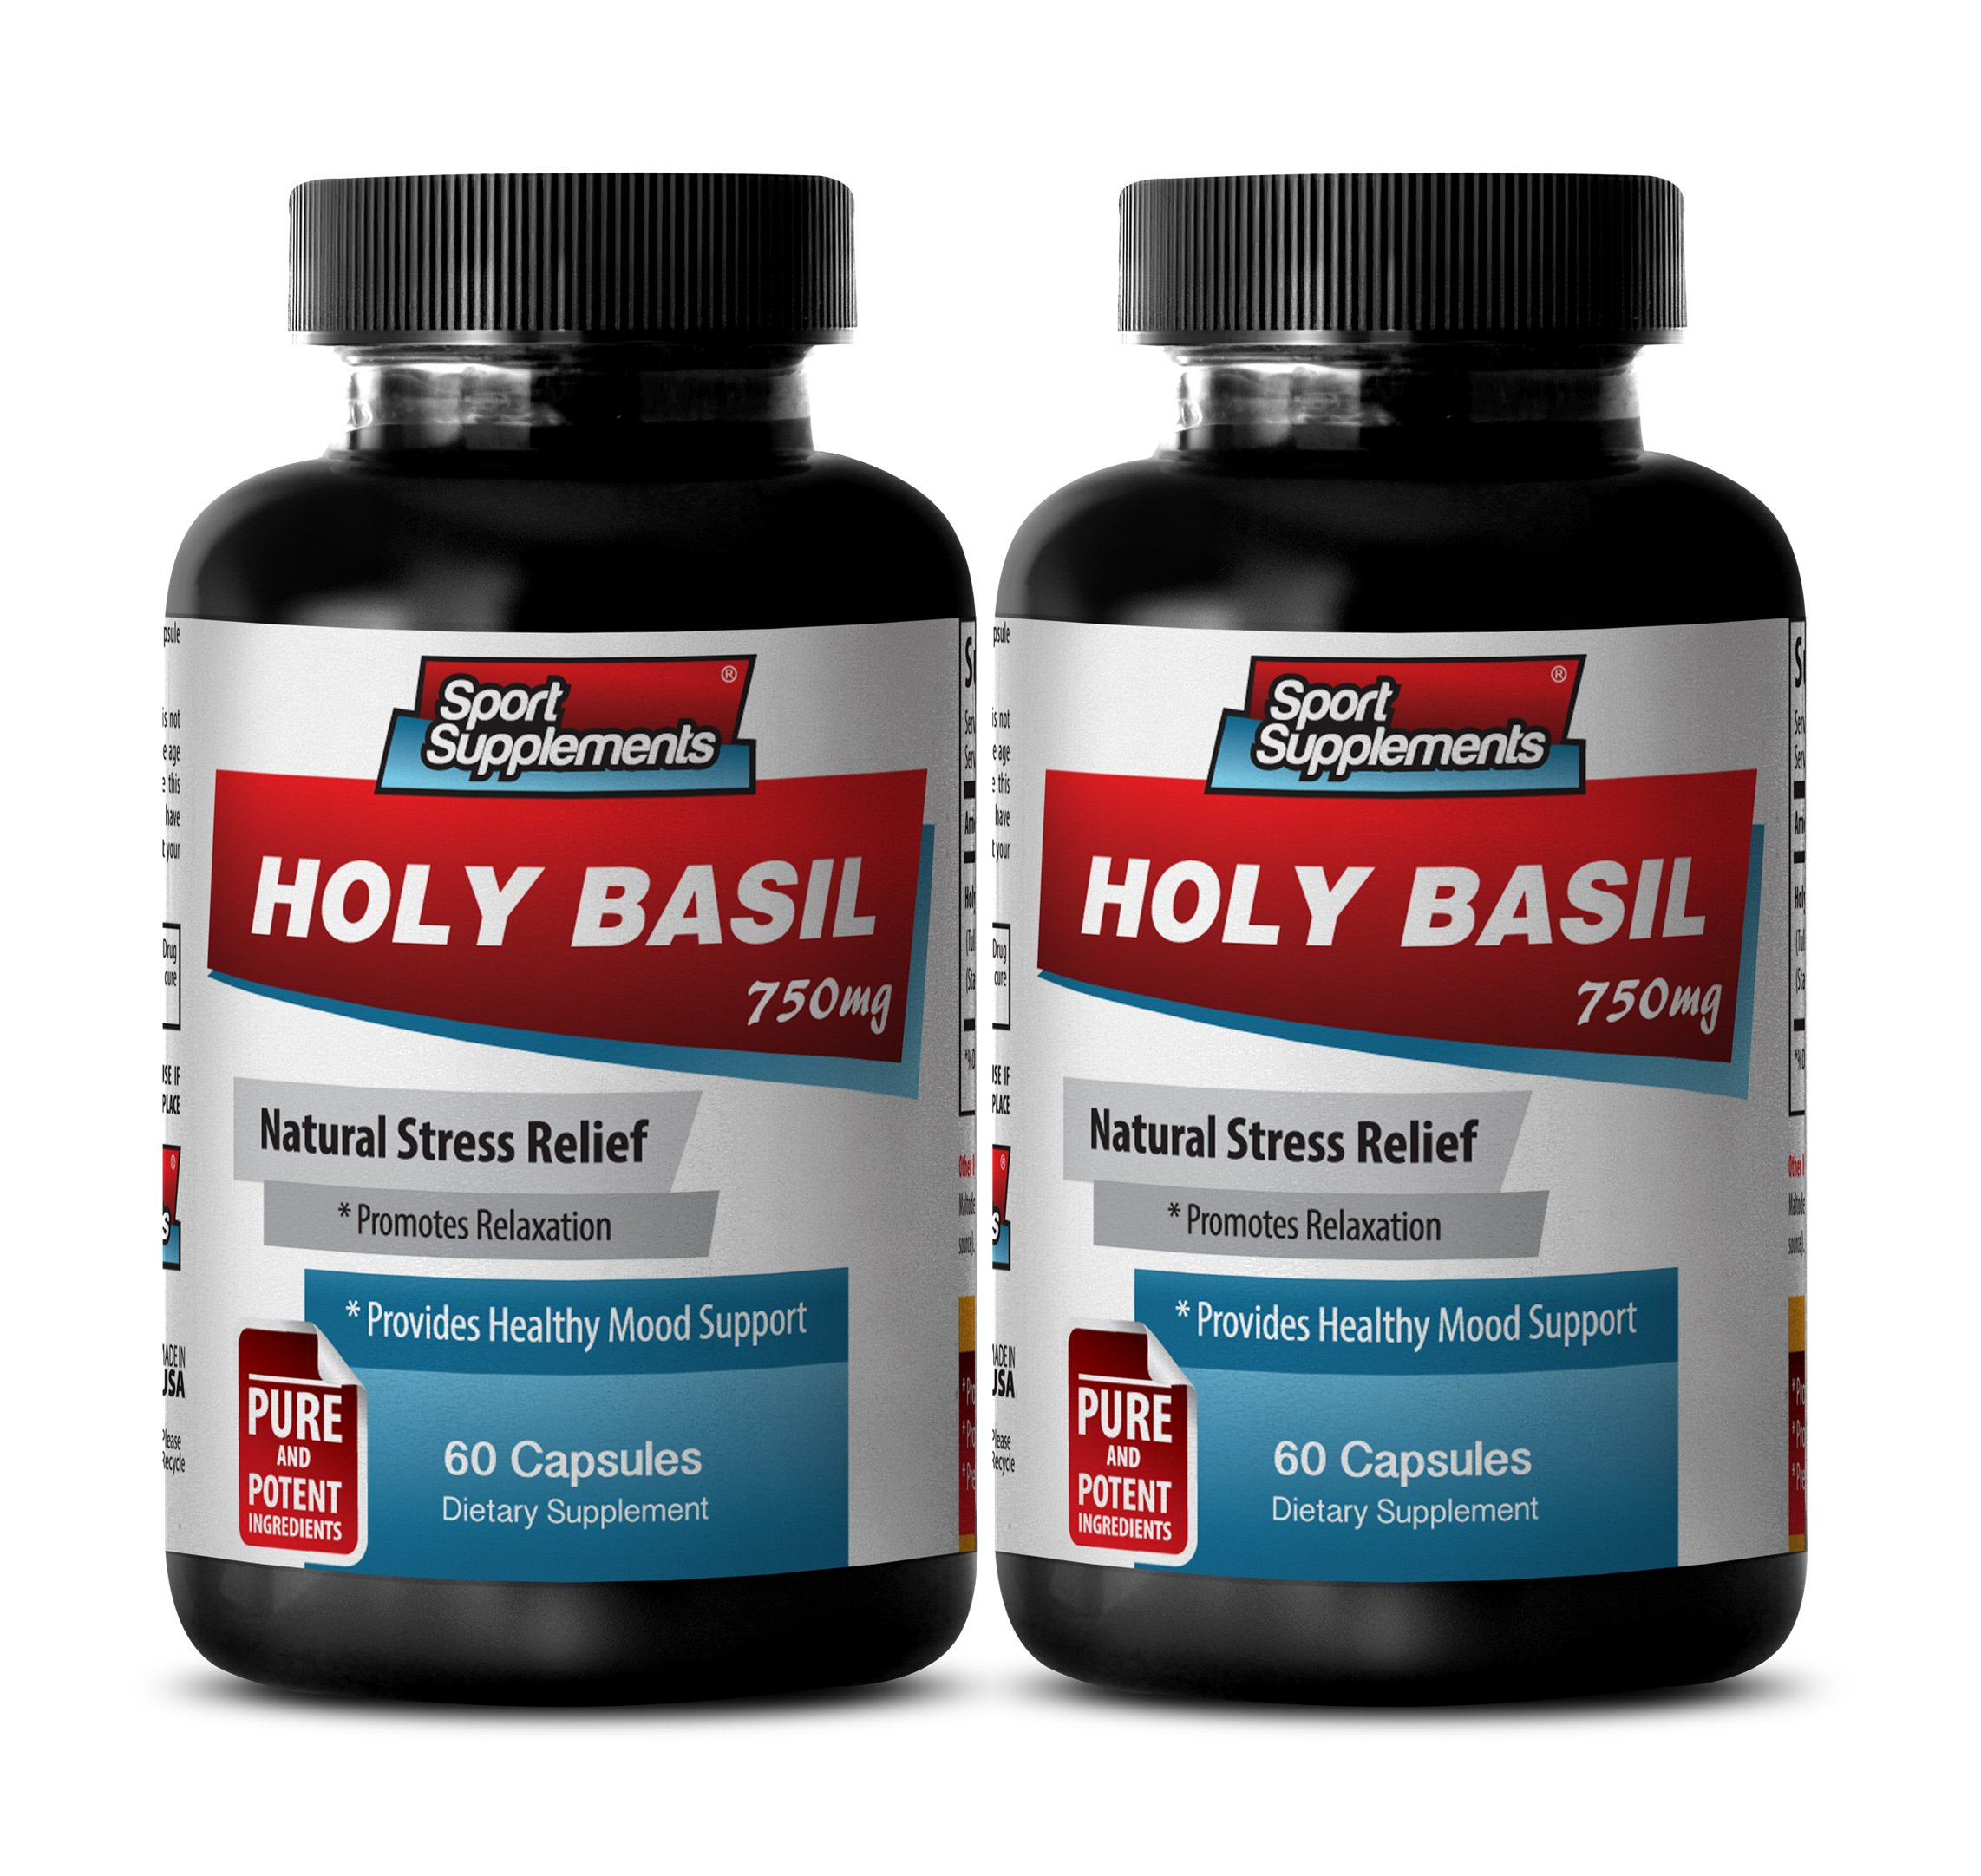 Antioxidant and immunity - HOLY BASIL EXTRACT 750Mg For Natural Stress Relief - Holy basil force new chapter - 2 Bottles 120 Capsules by Sport Supplements